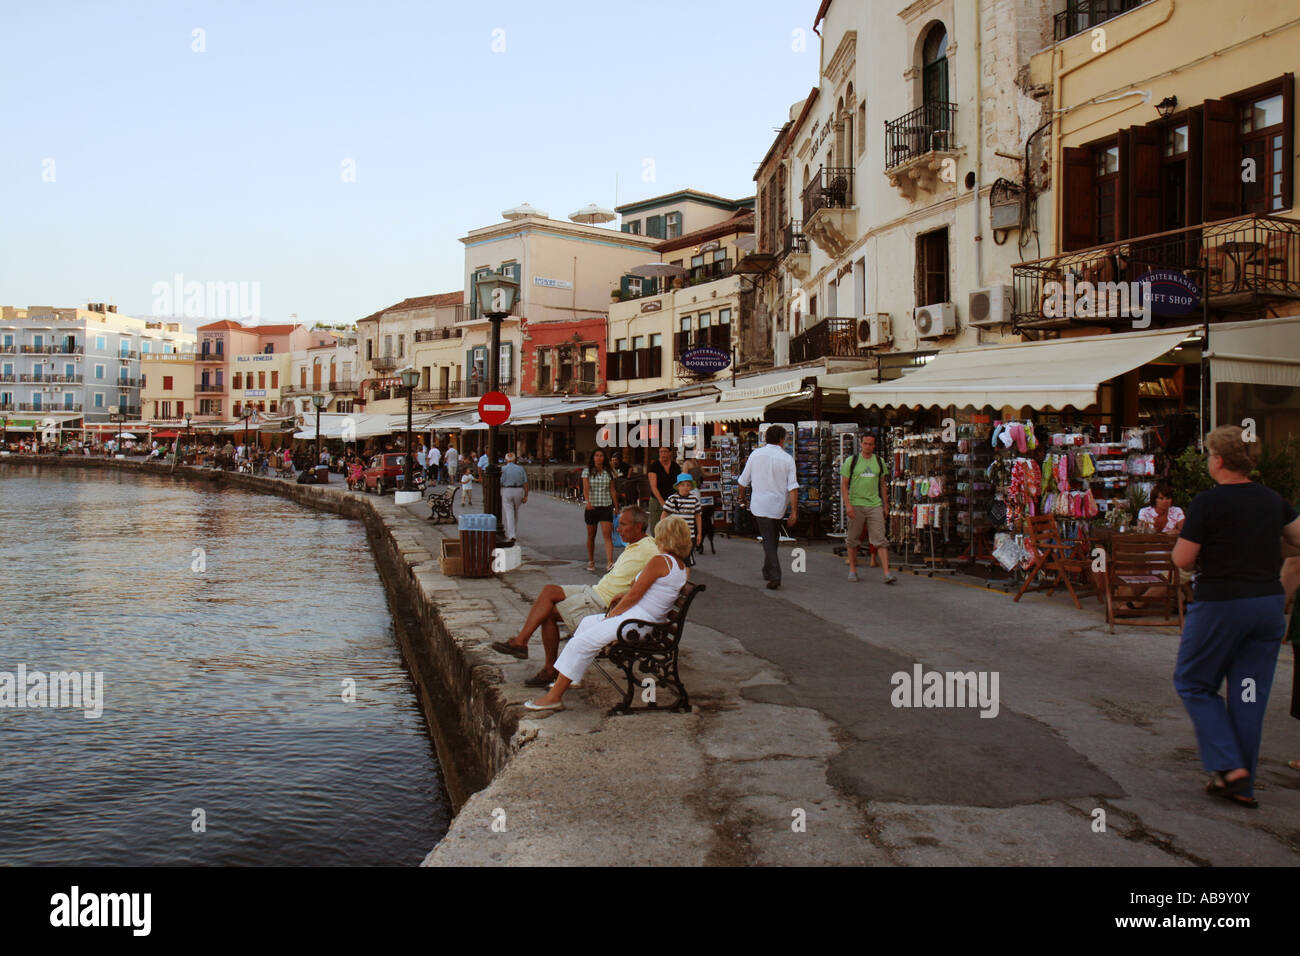 Reataurants and shops at the old Venetian harbour in Chania, Crete, Greece - Stock Image